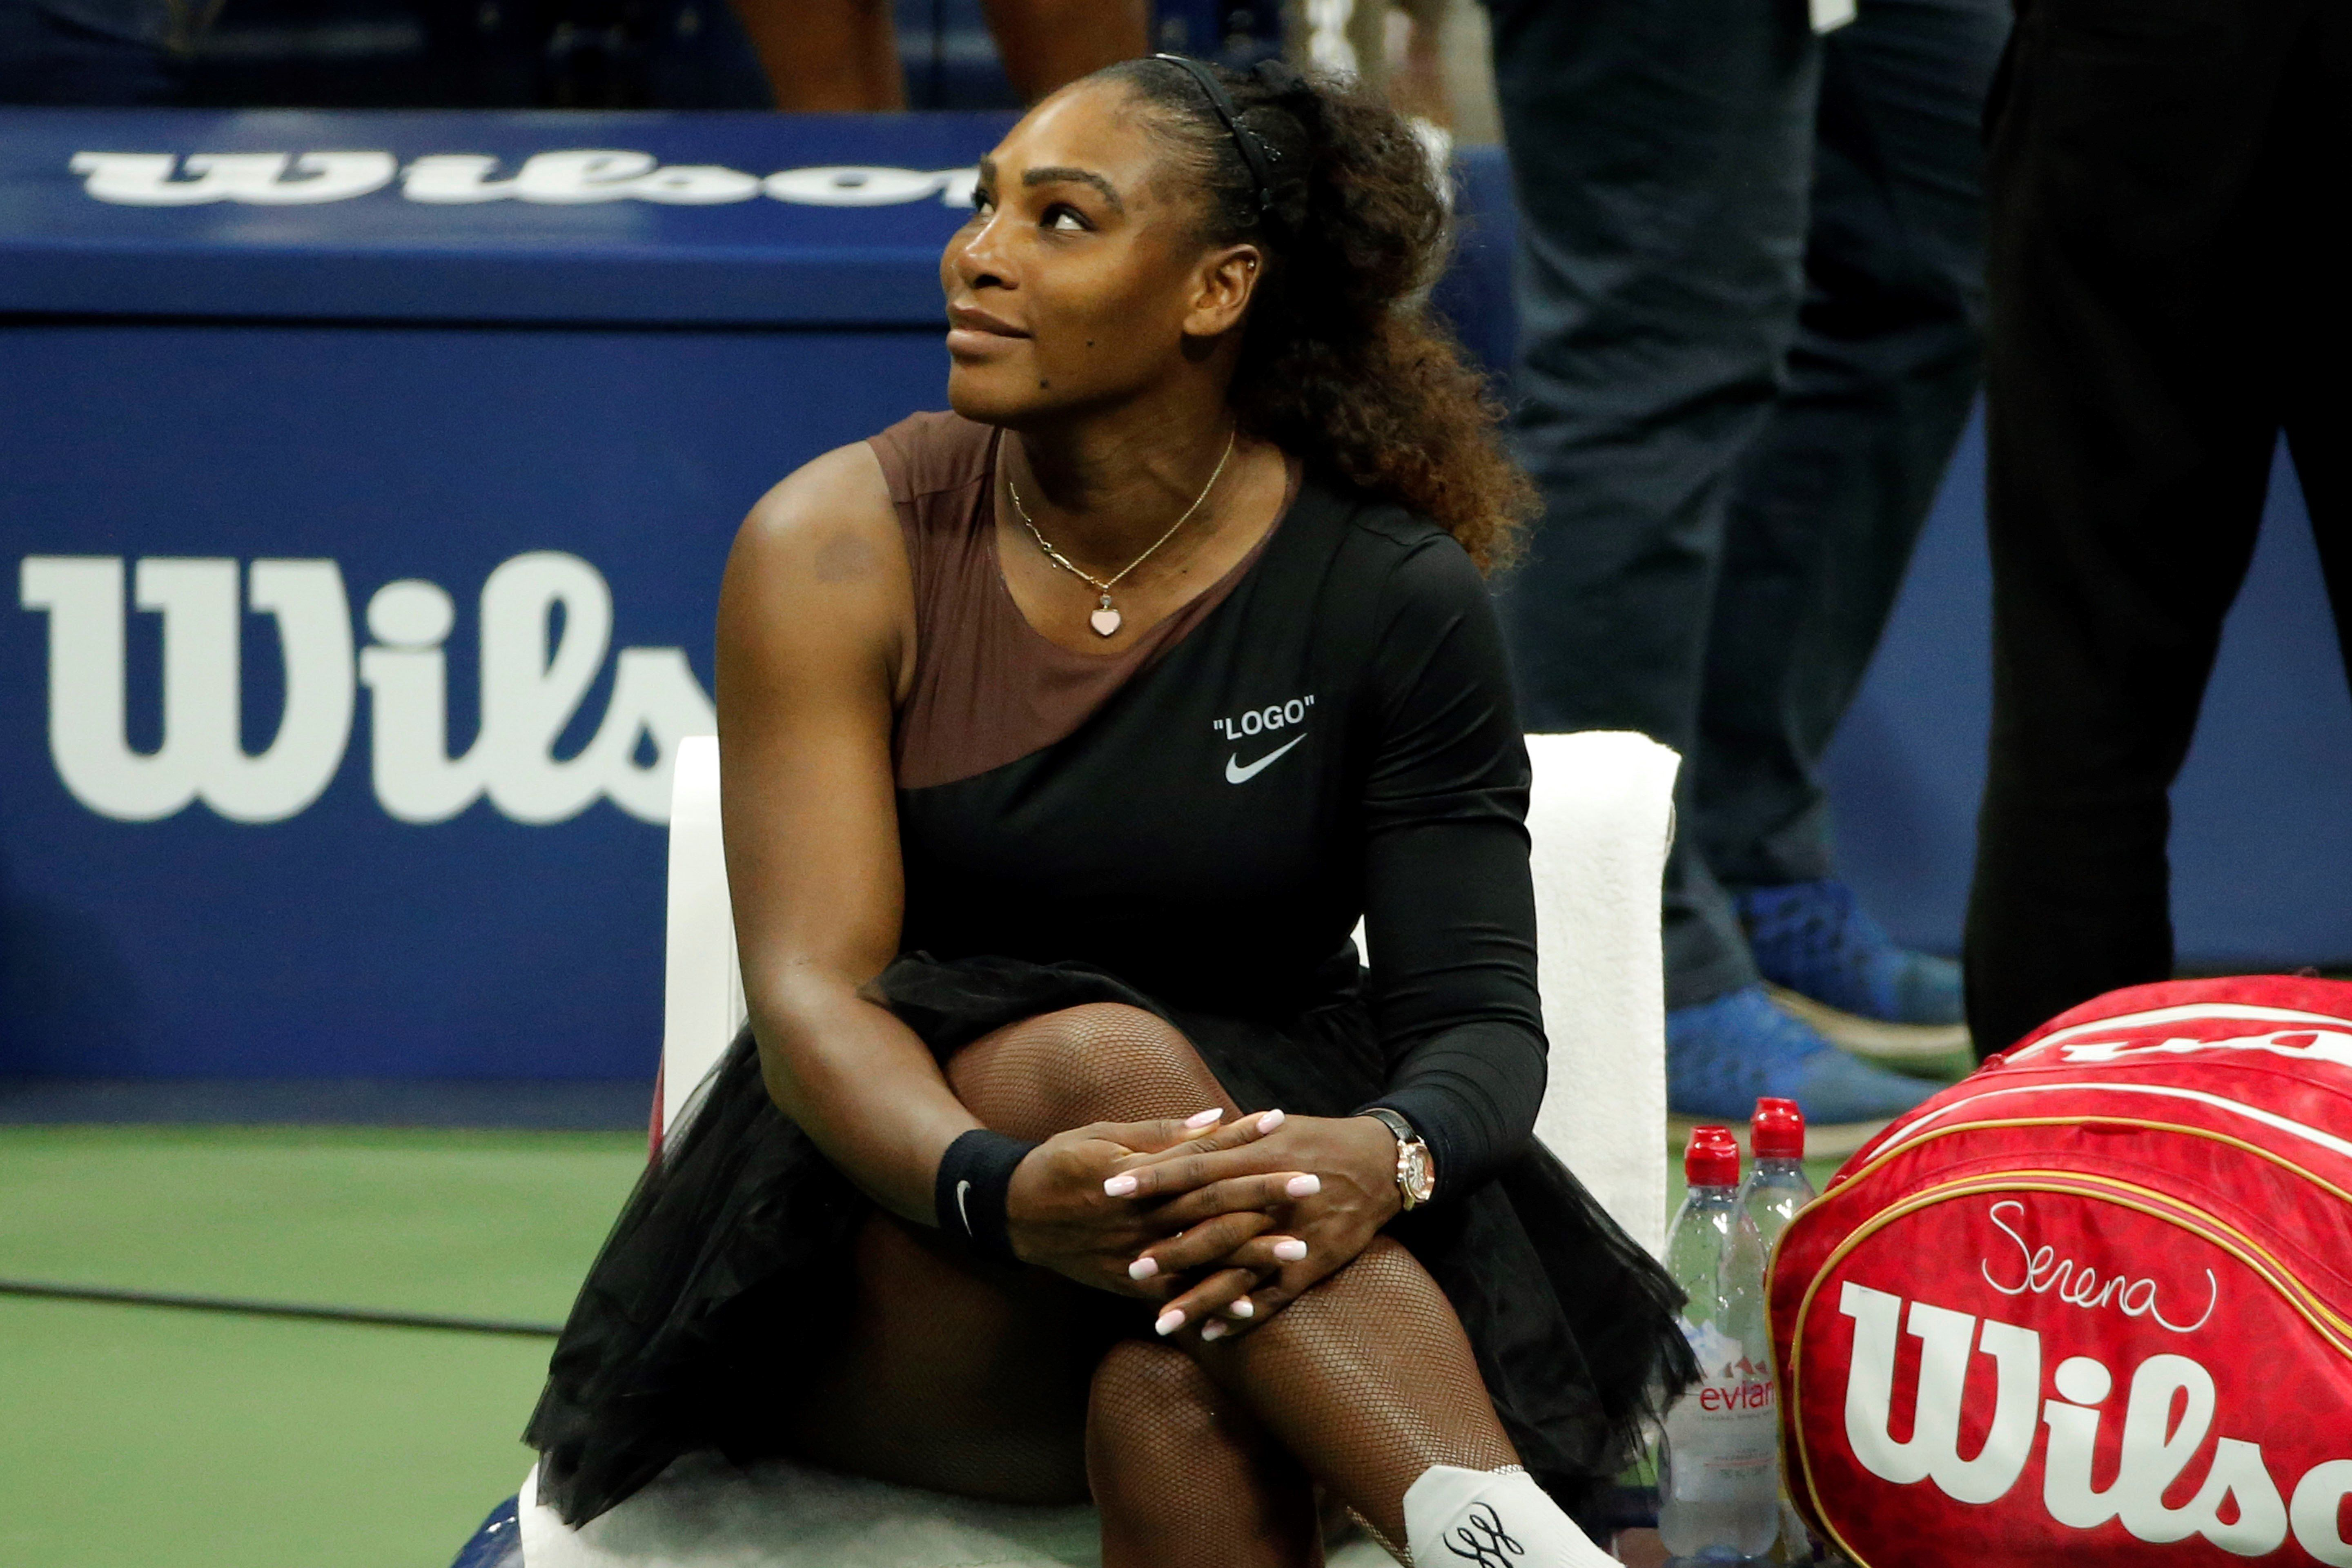 NEW YORK, USA - SEPTEMBER 8: Serena Williams of USA is seen during break within US Open 2018 women's final match against Naomi Osaka (not seen) of Japan on September 8, 2018 in New York, United States. (Photo by Mohammed Elshamy/Anadolu Agency/Getty Images)